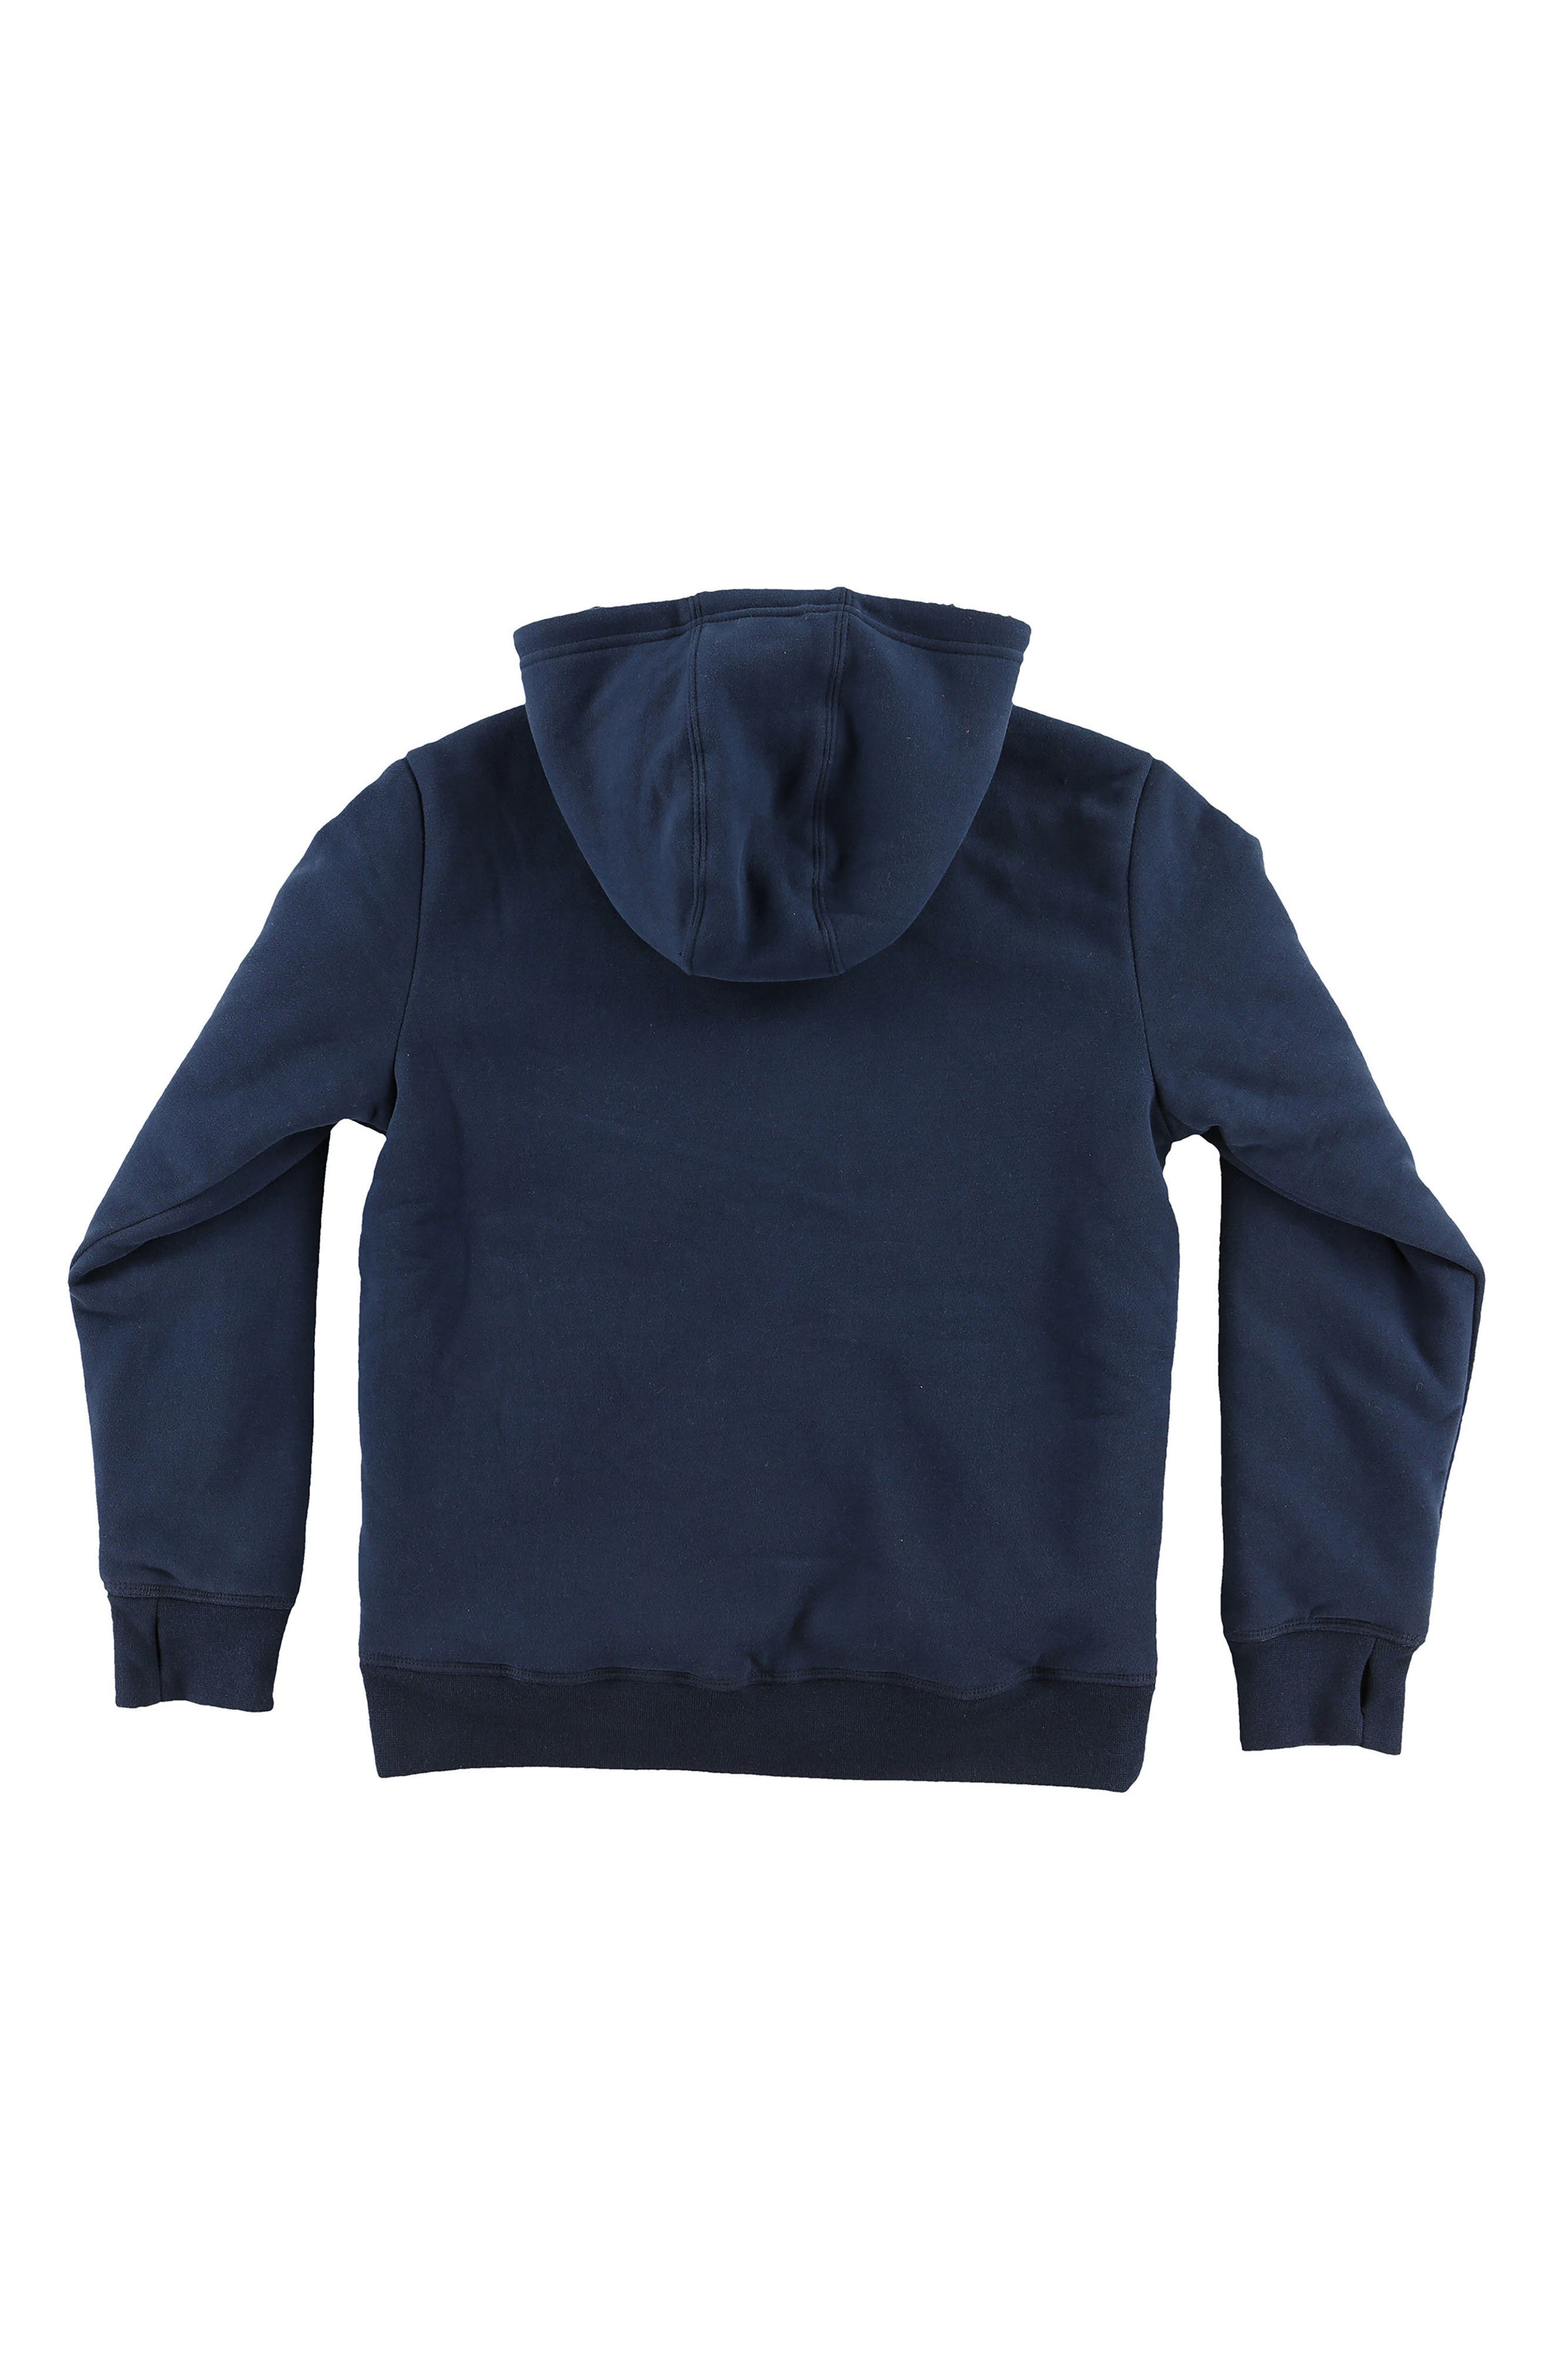 Staple Plush Lined Pullover Hoodie,                             Main thumbnail 1, color,                             410